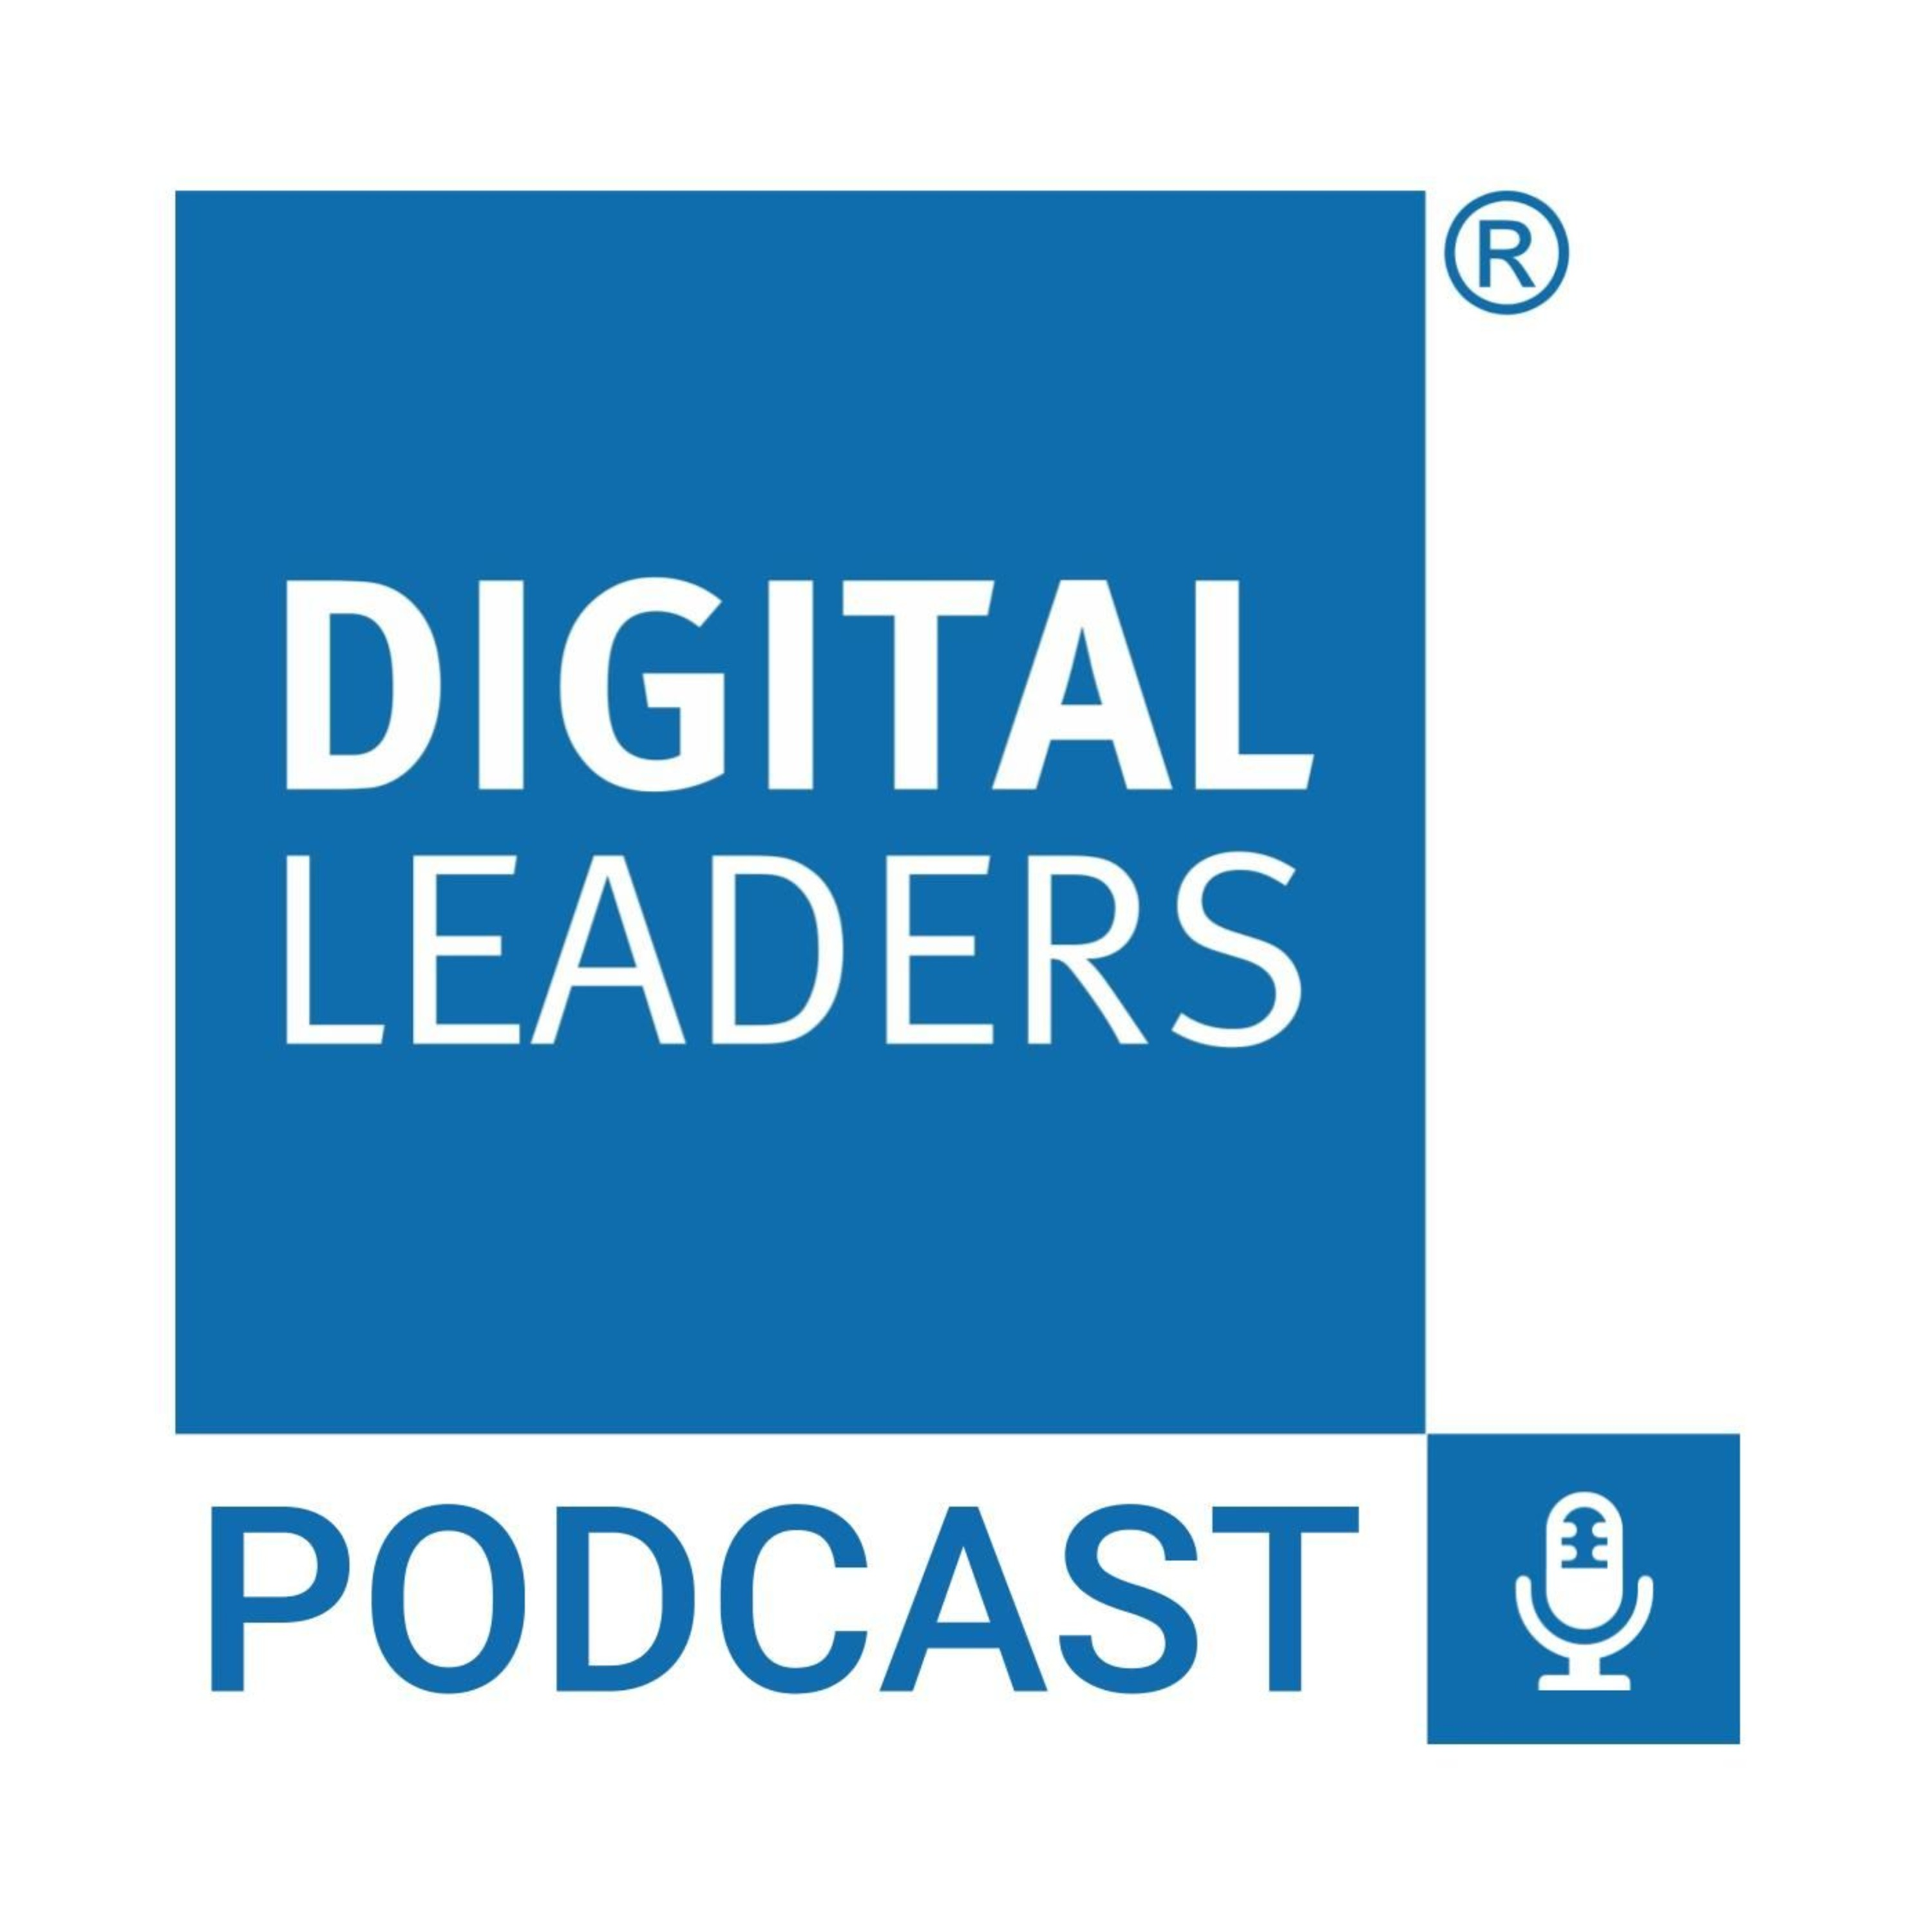 Episode 9: Nick Williams, Managing Director, Commercial Transformation, Lloyds Banking Group